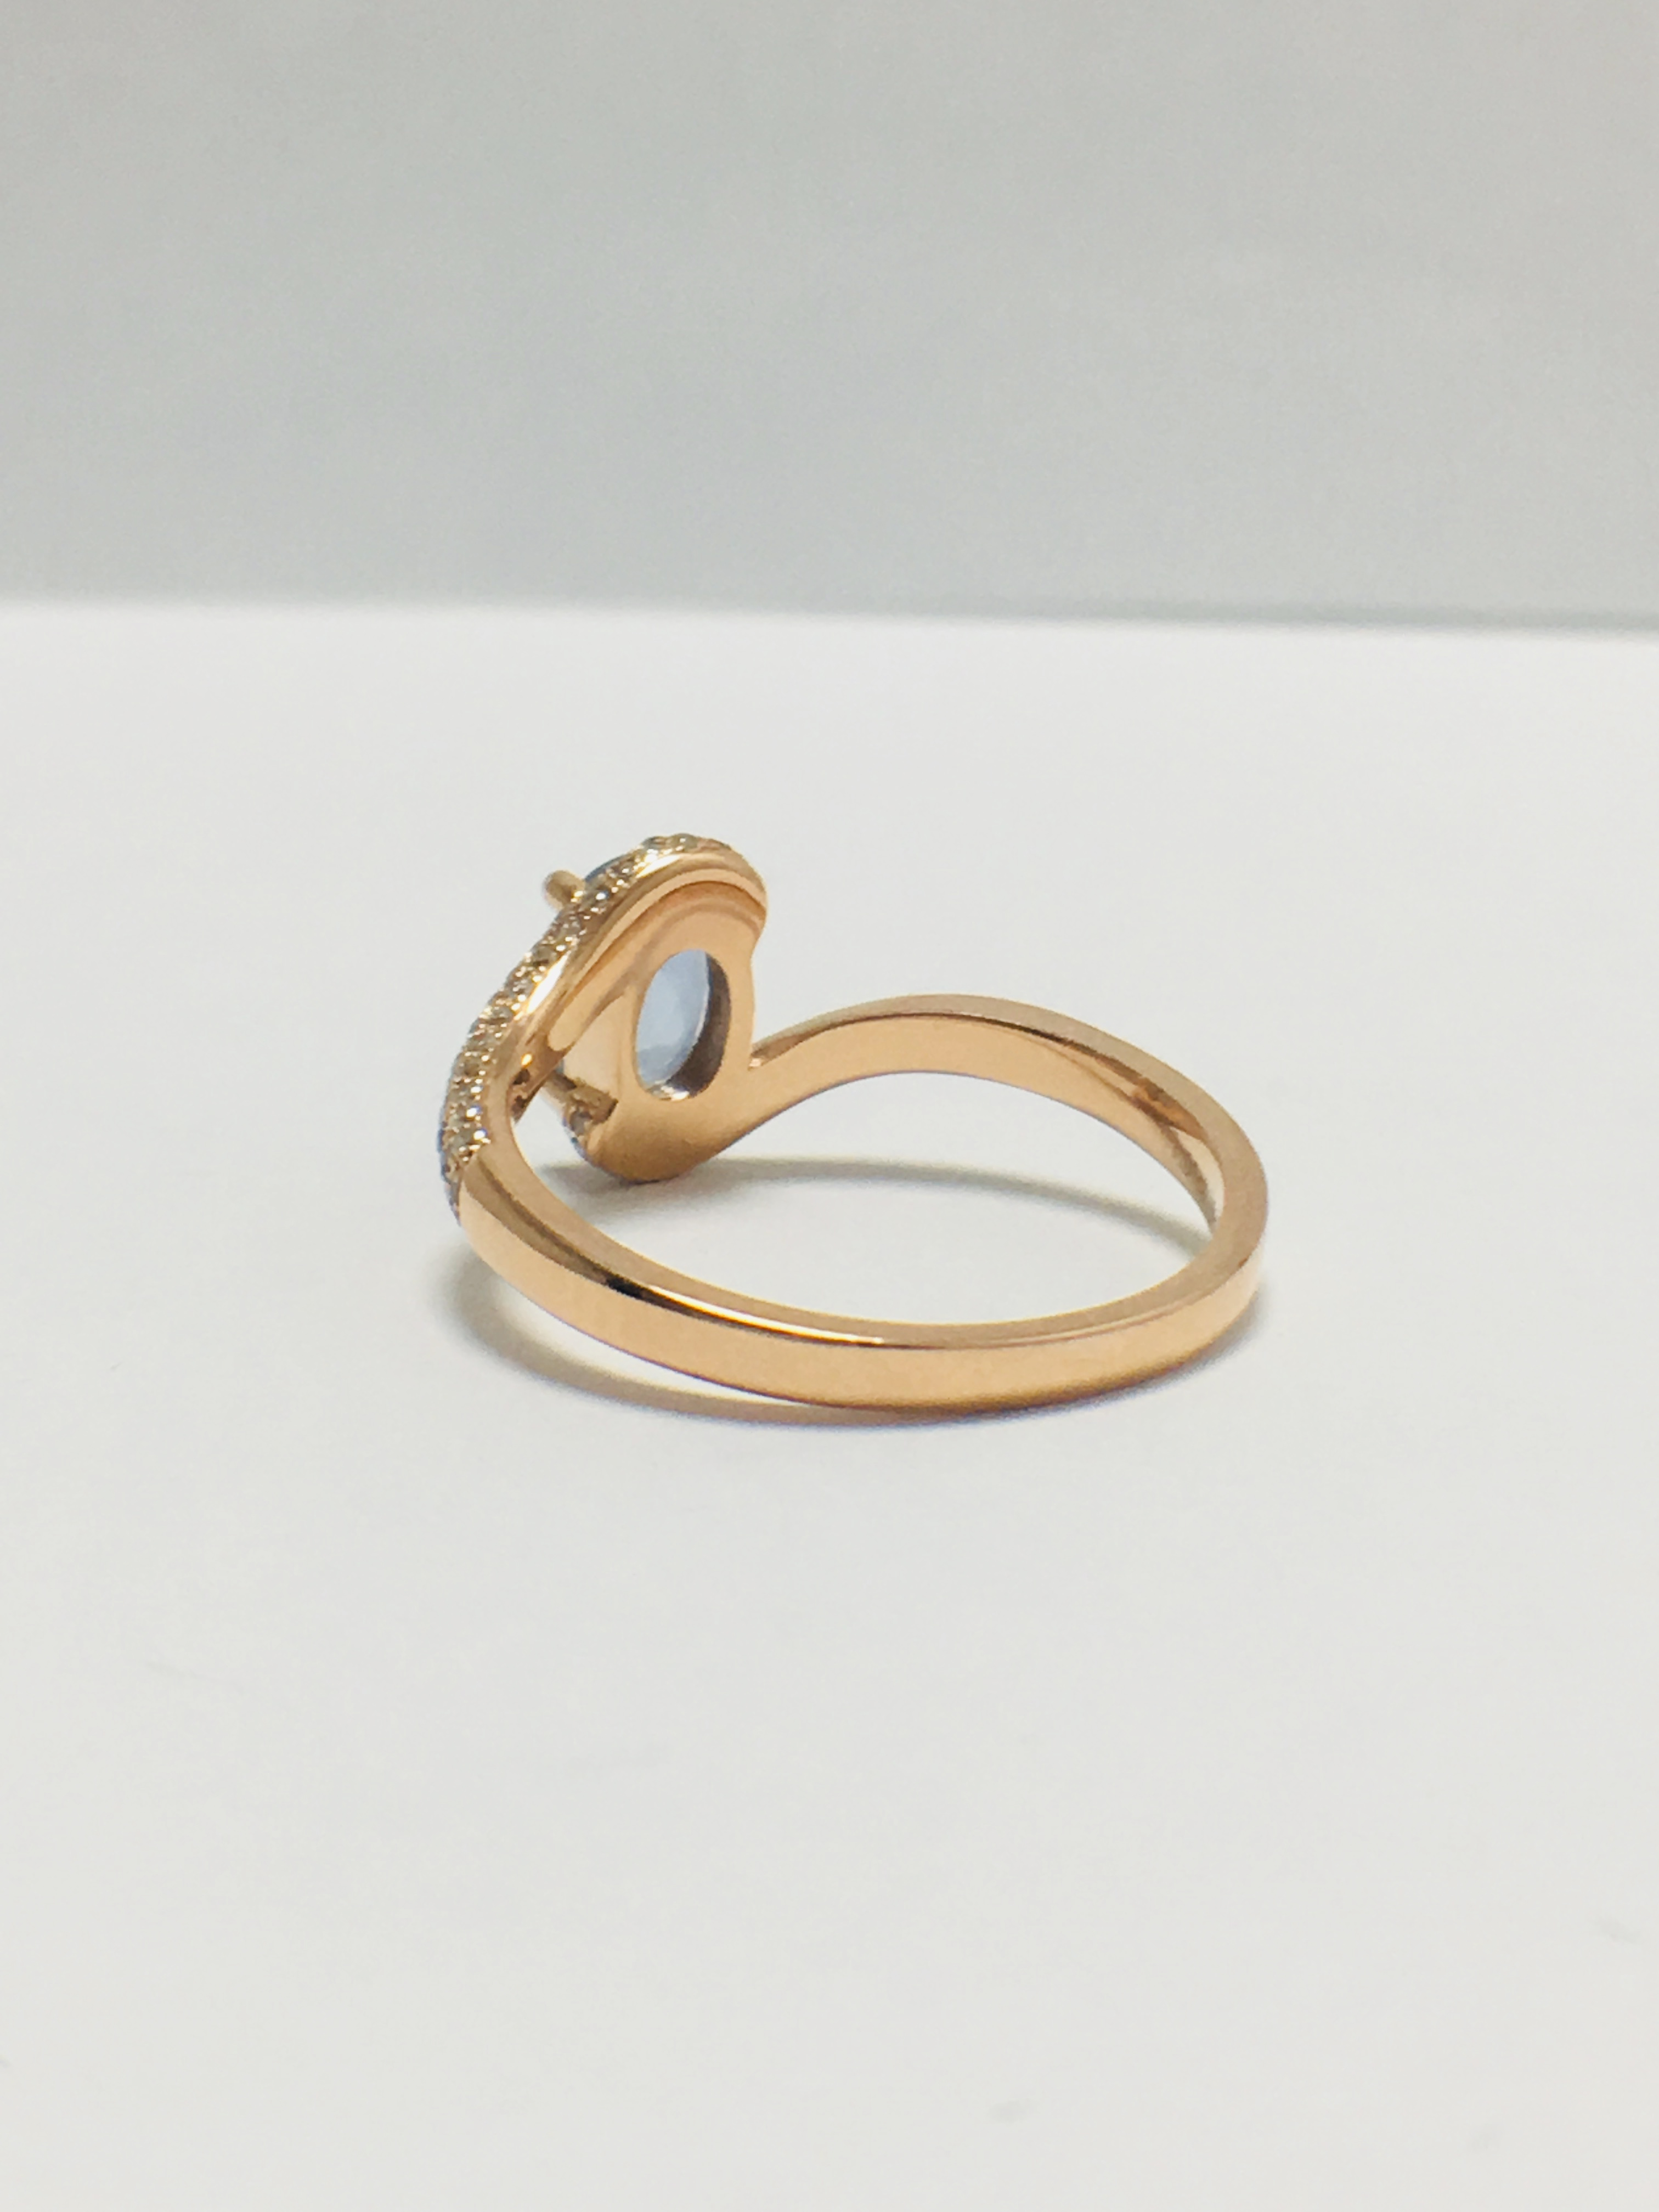 14ct rose gold sapphire and diamond ring - Image 4 of 9